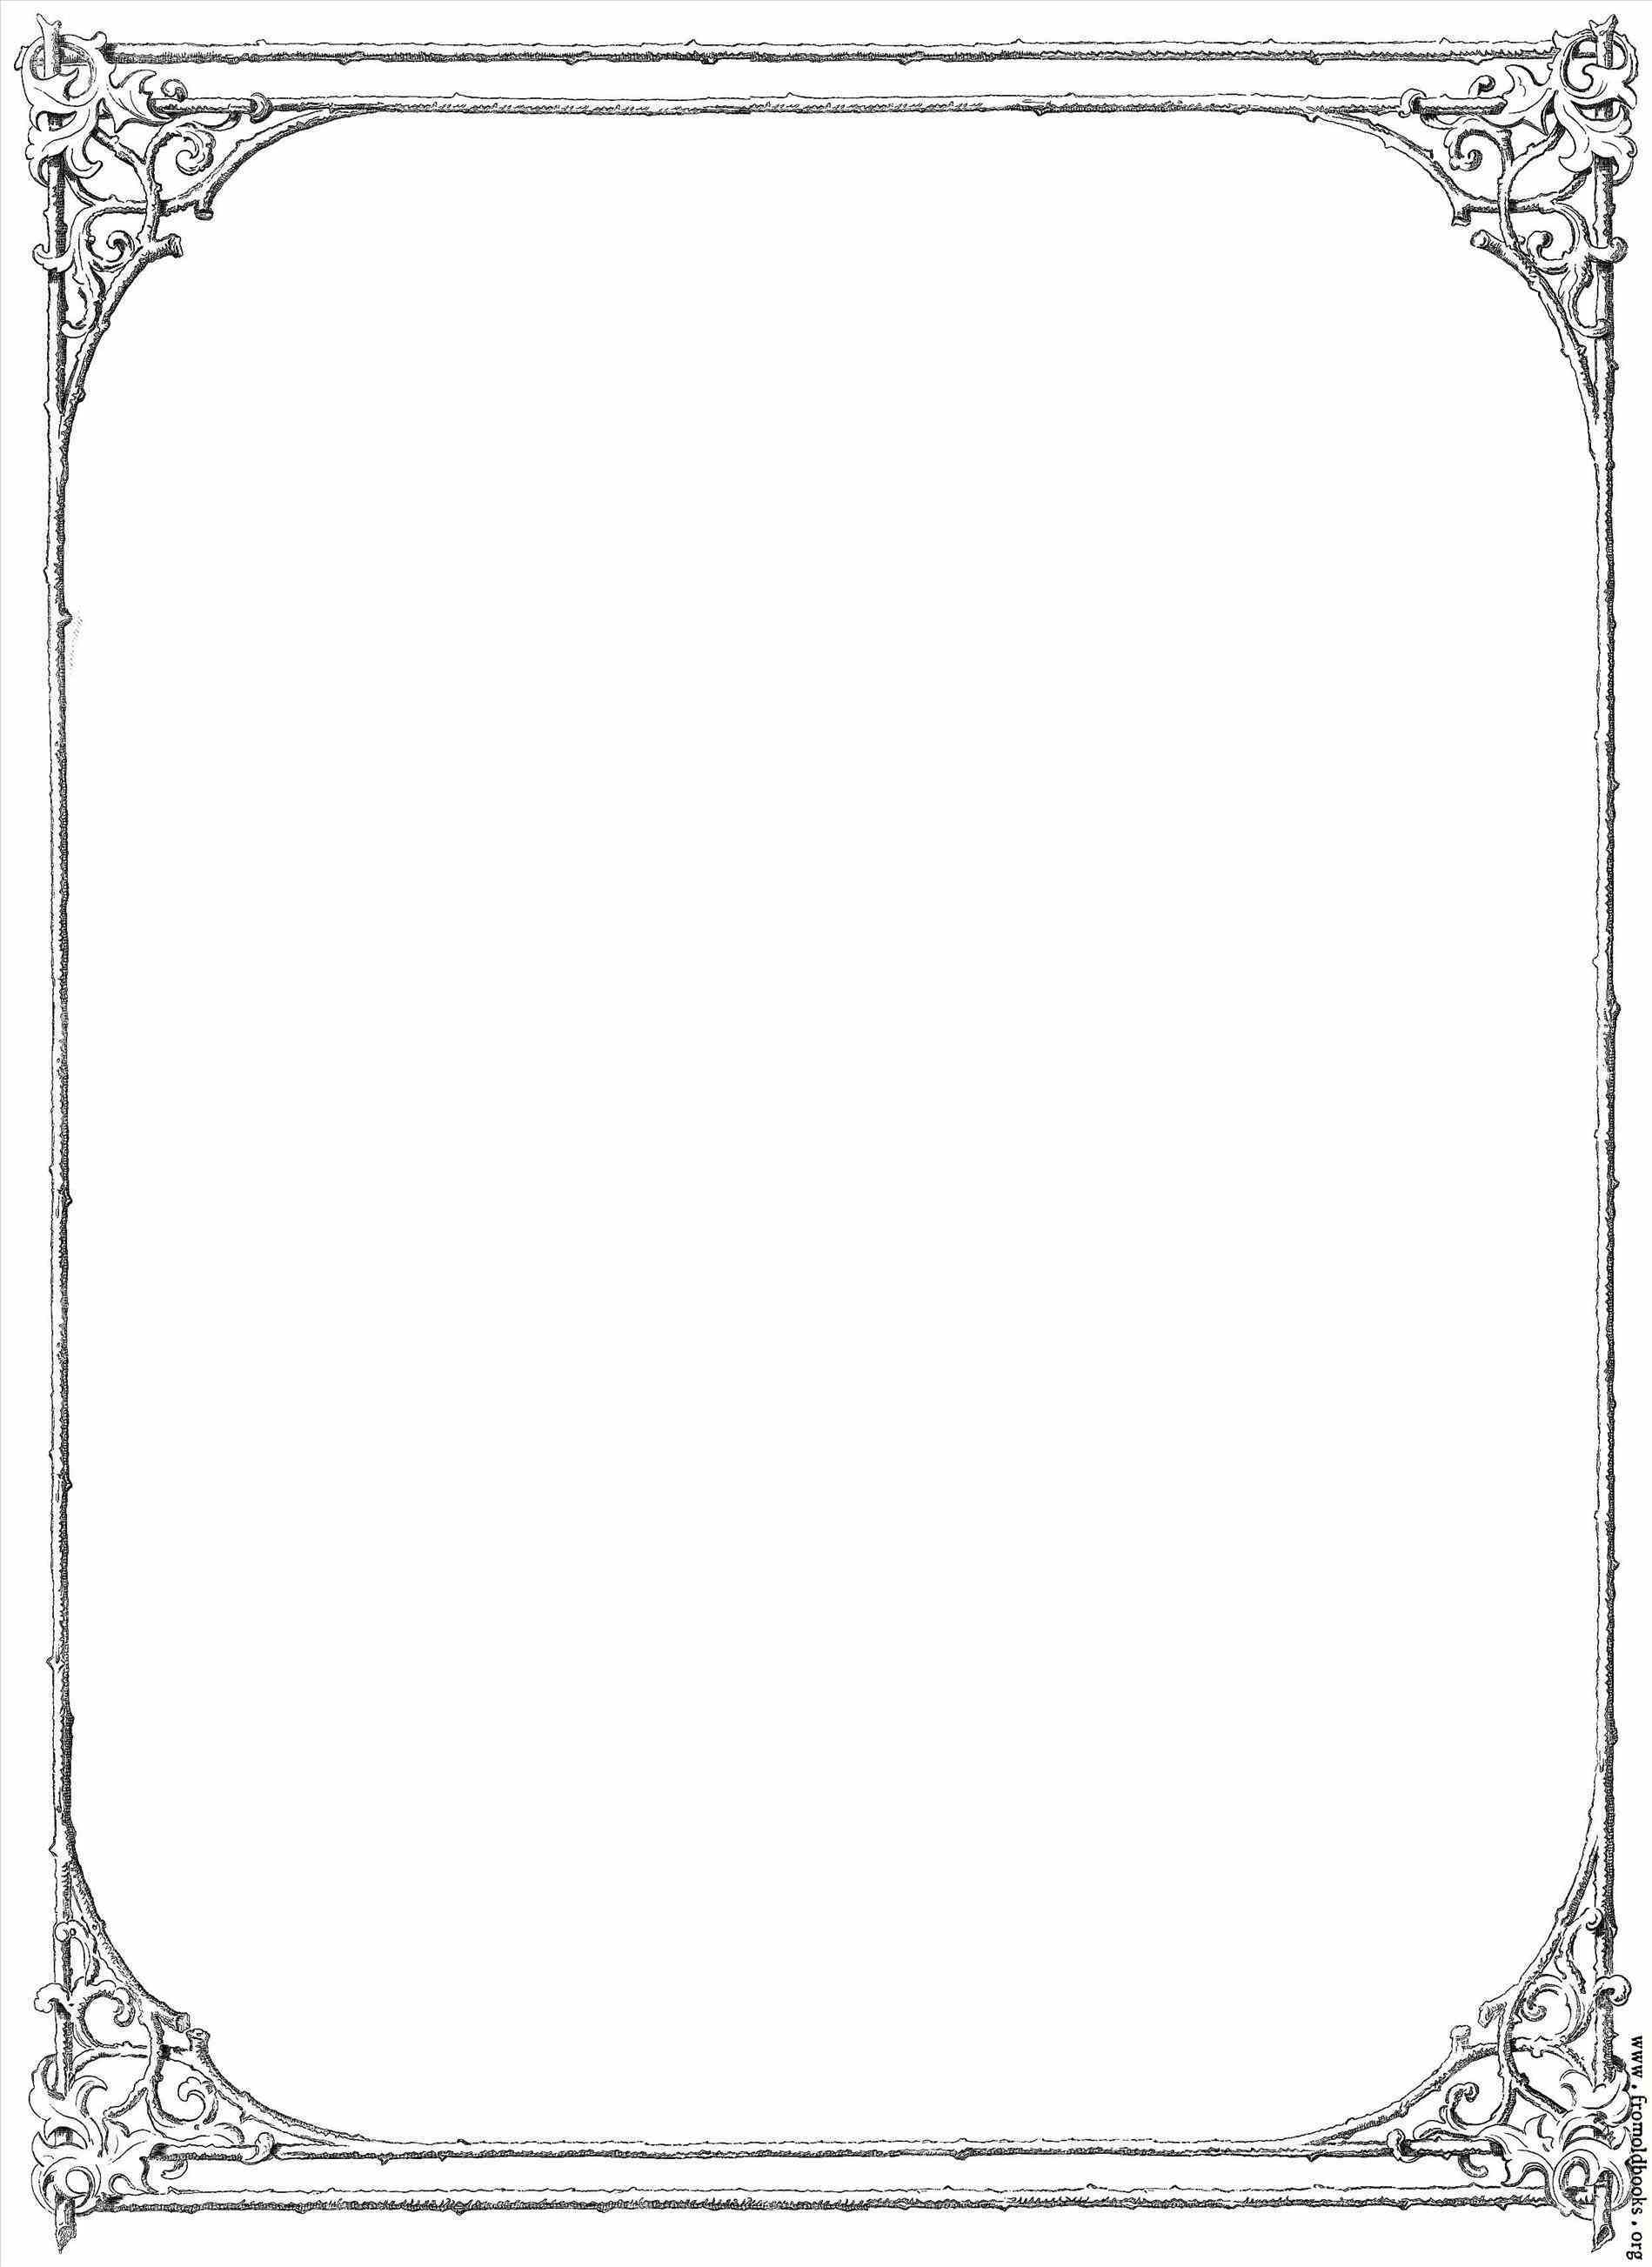 hight resolution of frame clipart victorian border of twigs and